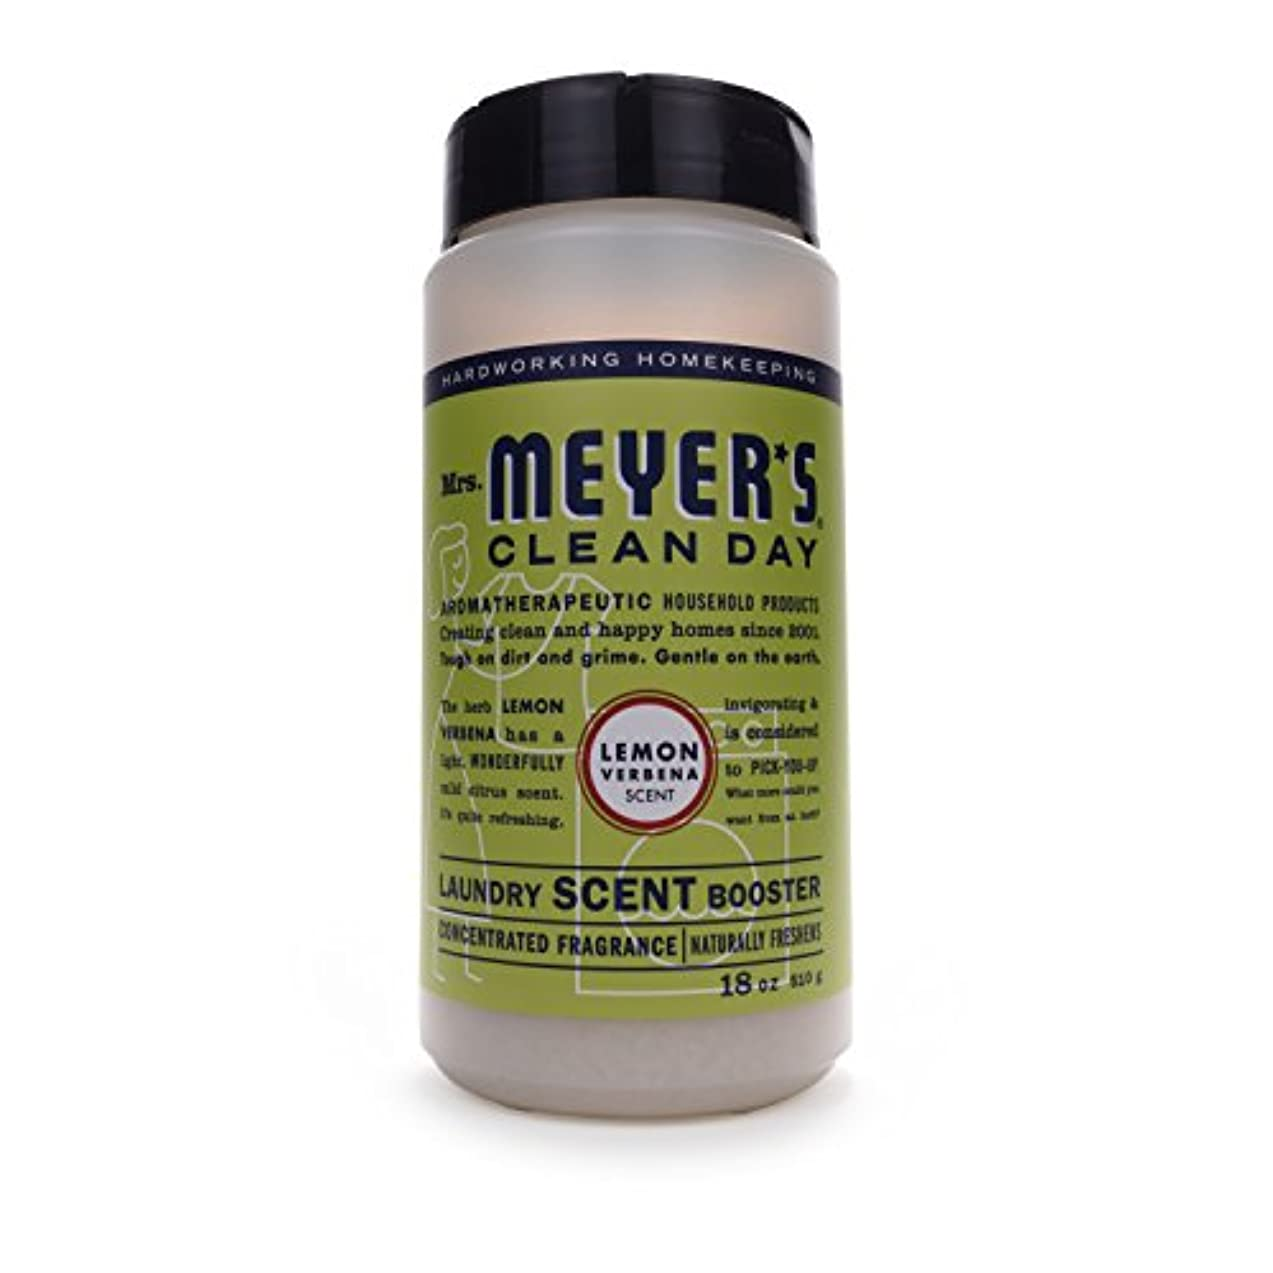 Mrs. Meyer's Clean Day Laundry Scent Booster, Lemon Verbena Scent, 18 ounce bottle